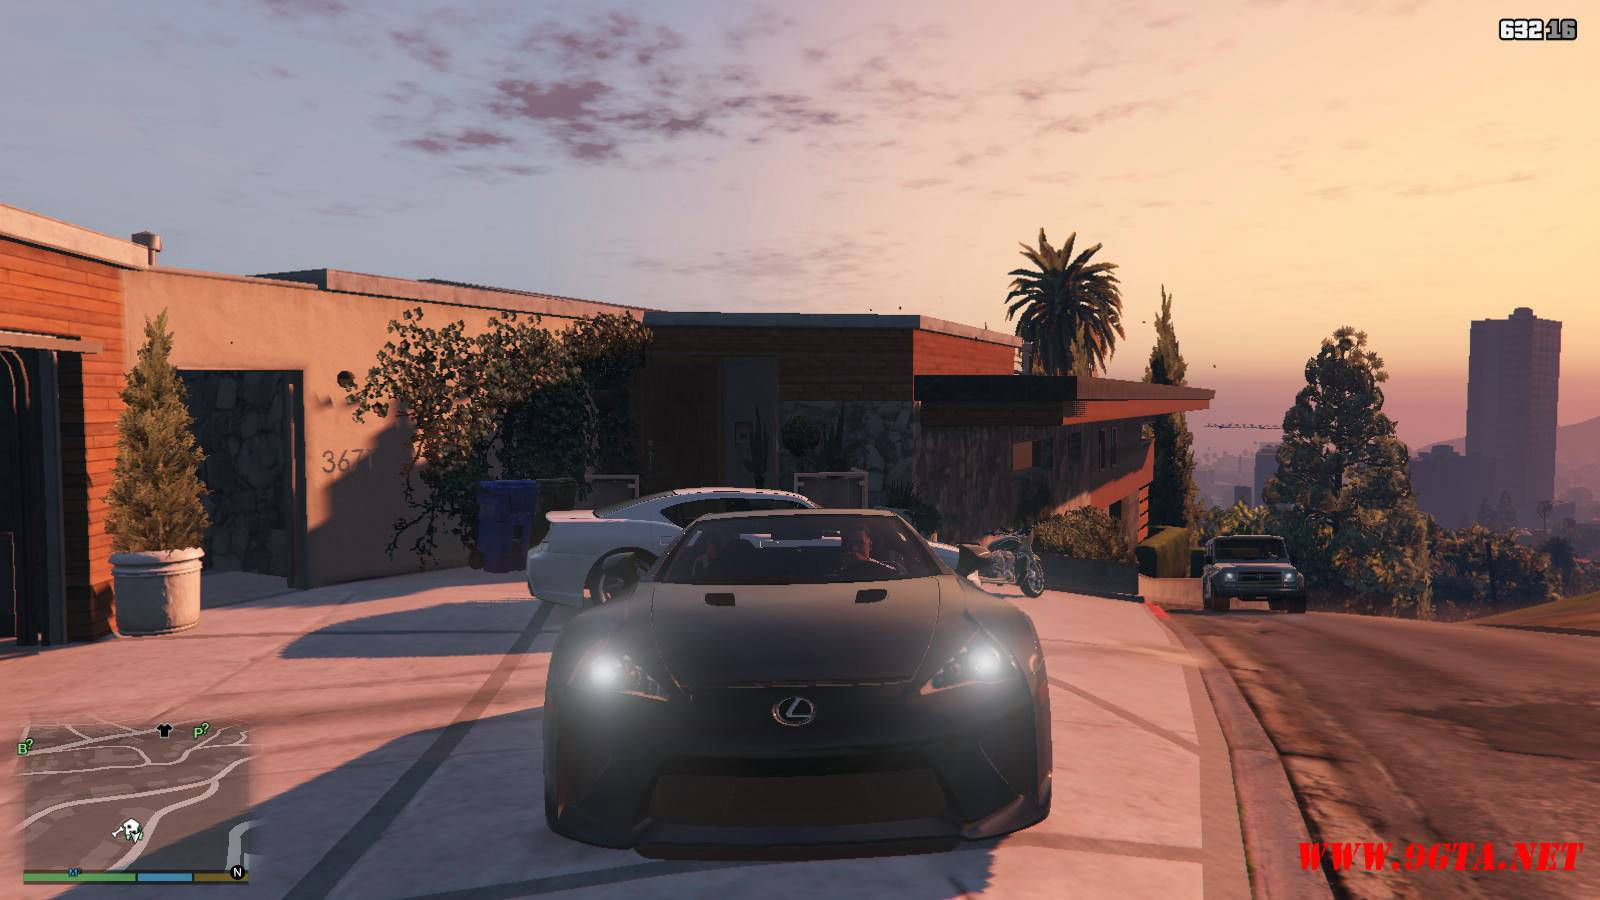 2010 Lexus LFA v2.0 Mod For GTA5 (9)